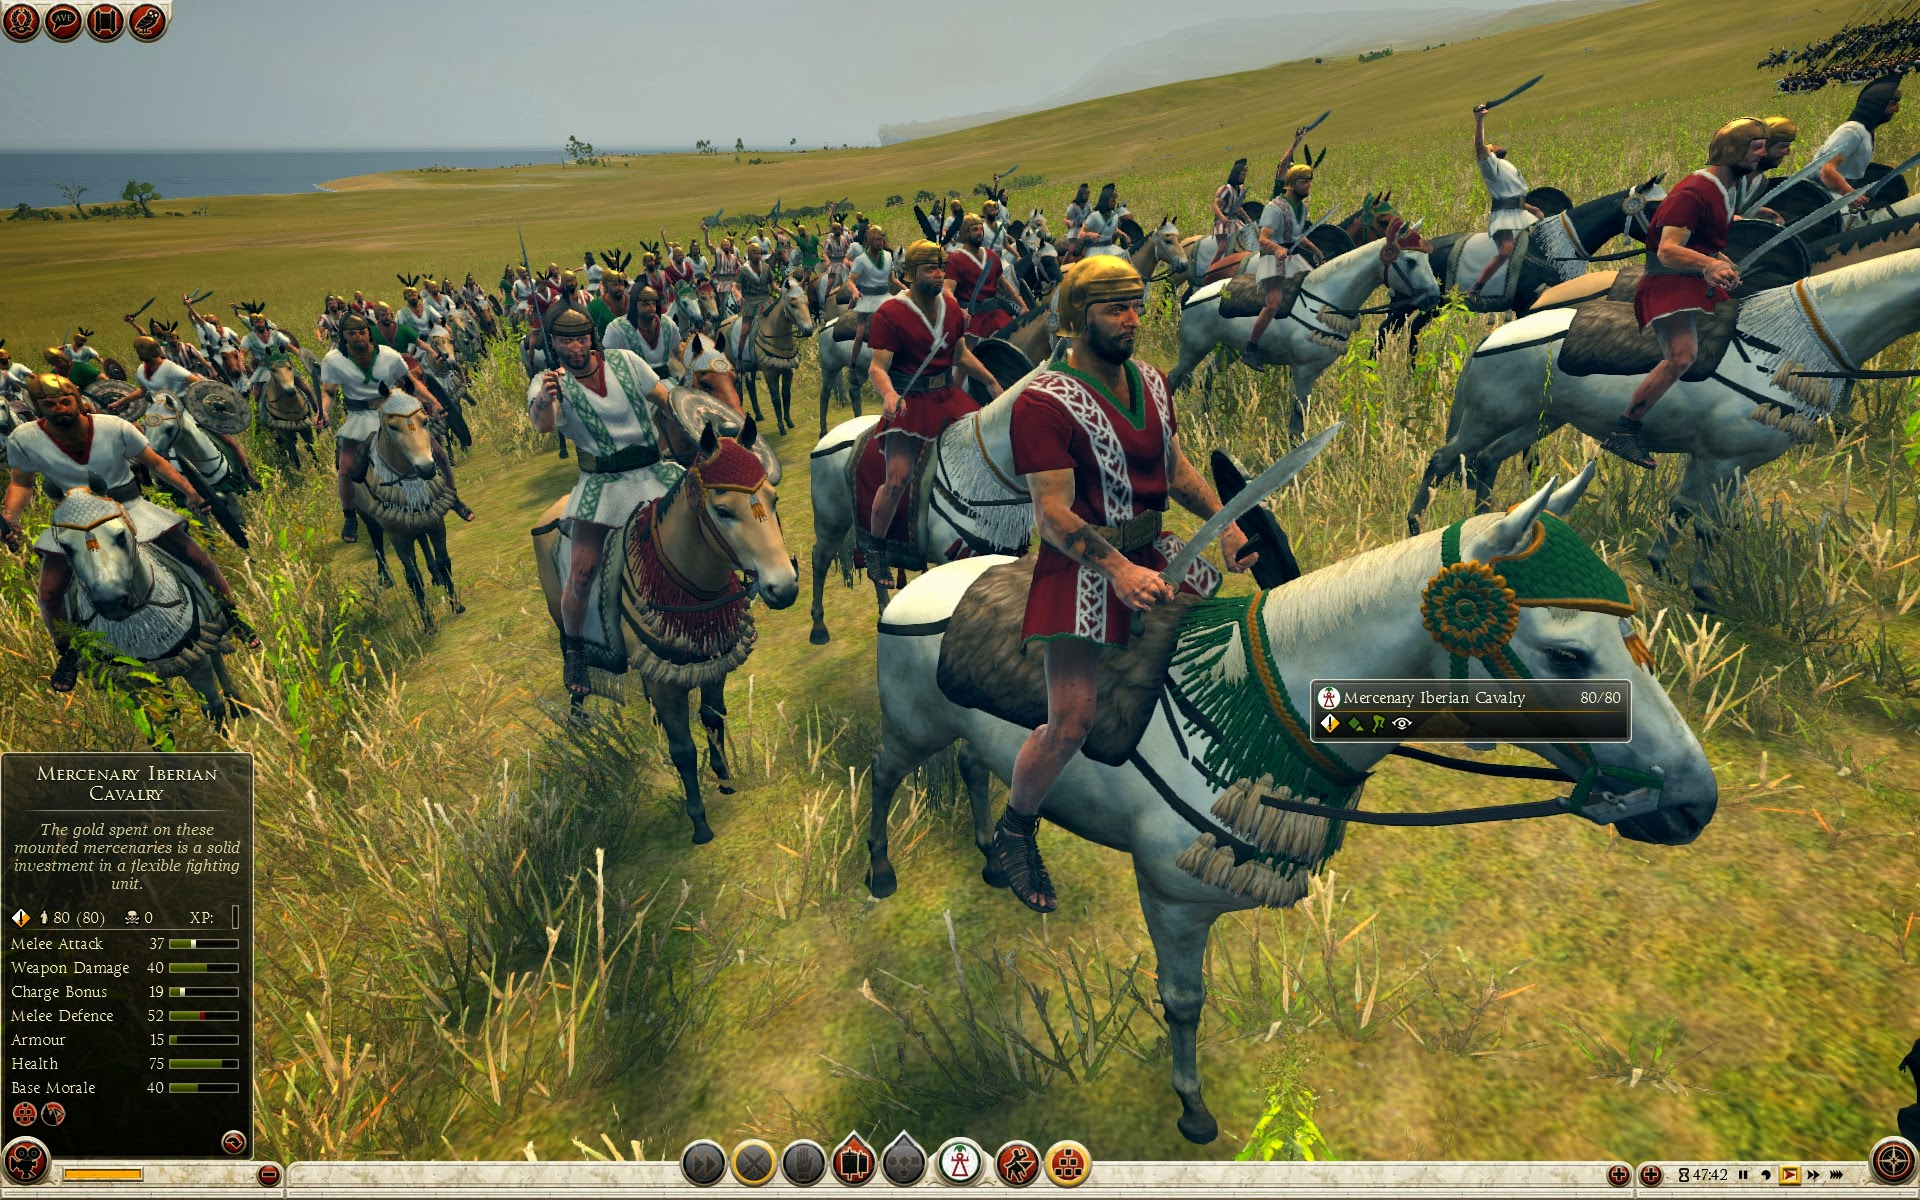 Mercenary Iberian Cavalry